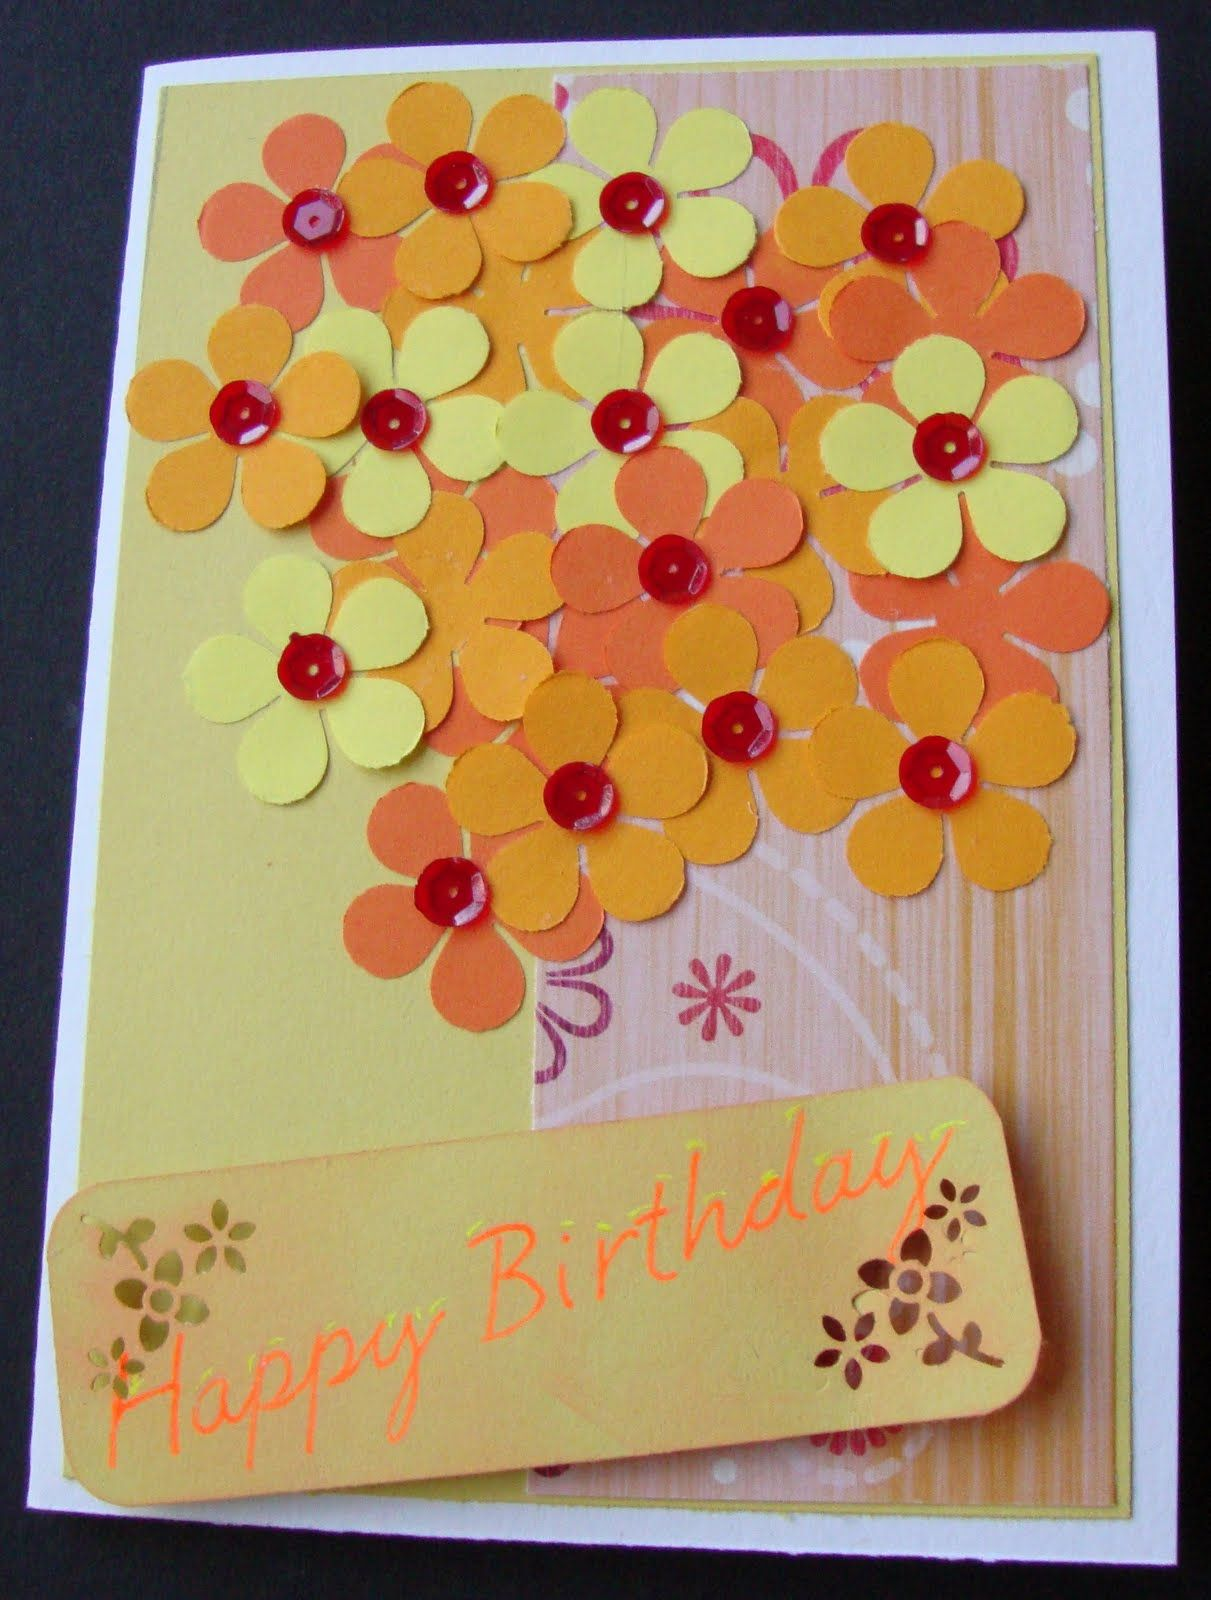 New handmade cards ideas images for New handmade craft ideas